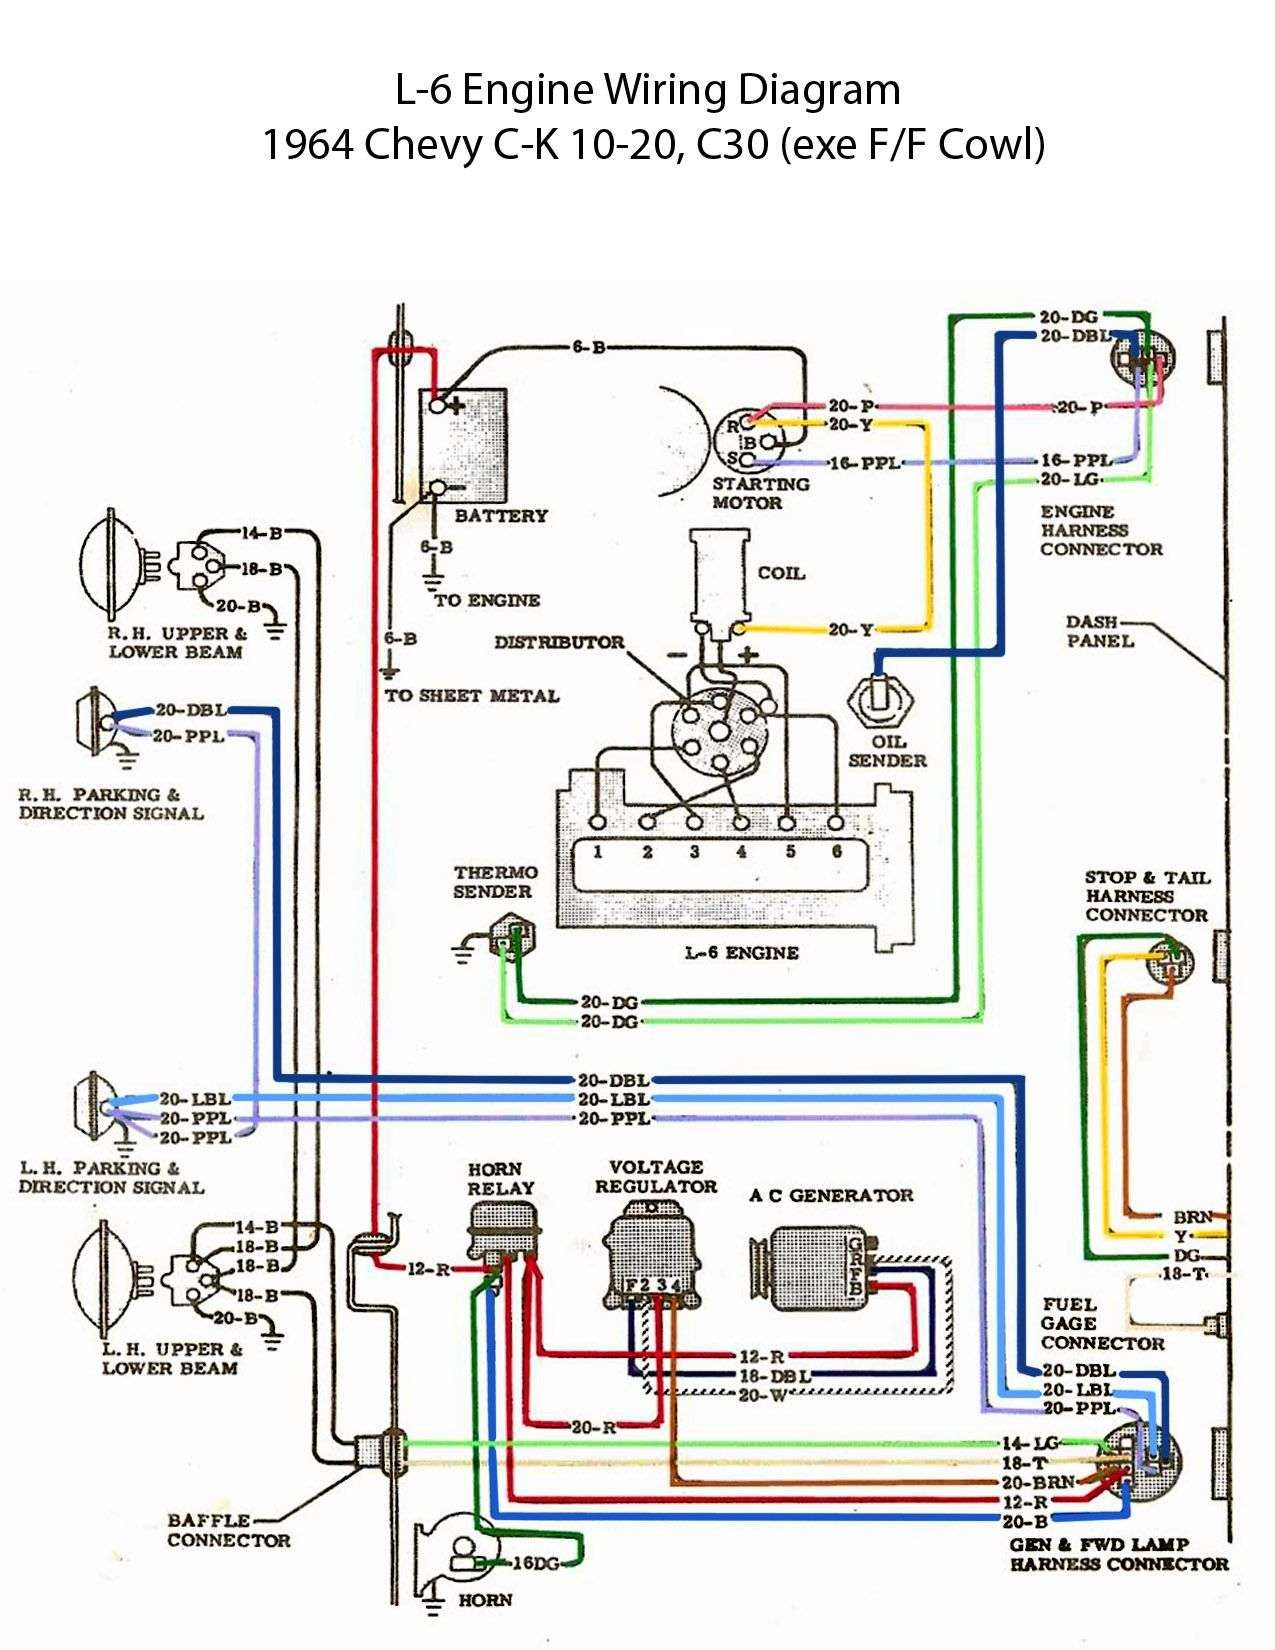 Wiring Diagram Cars Trucks Teknik Mesin Diagram Teknologi